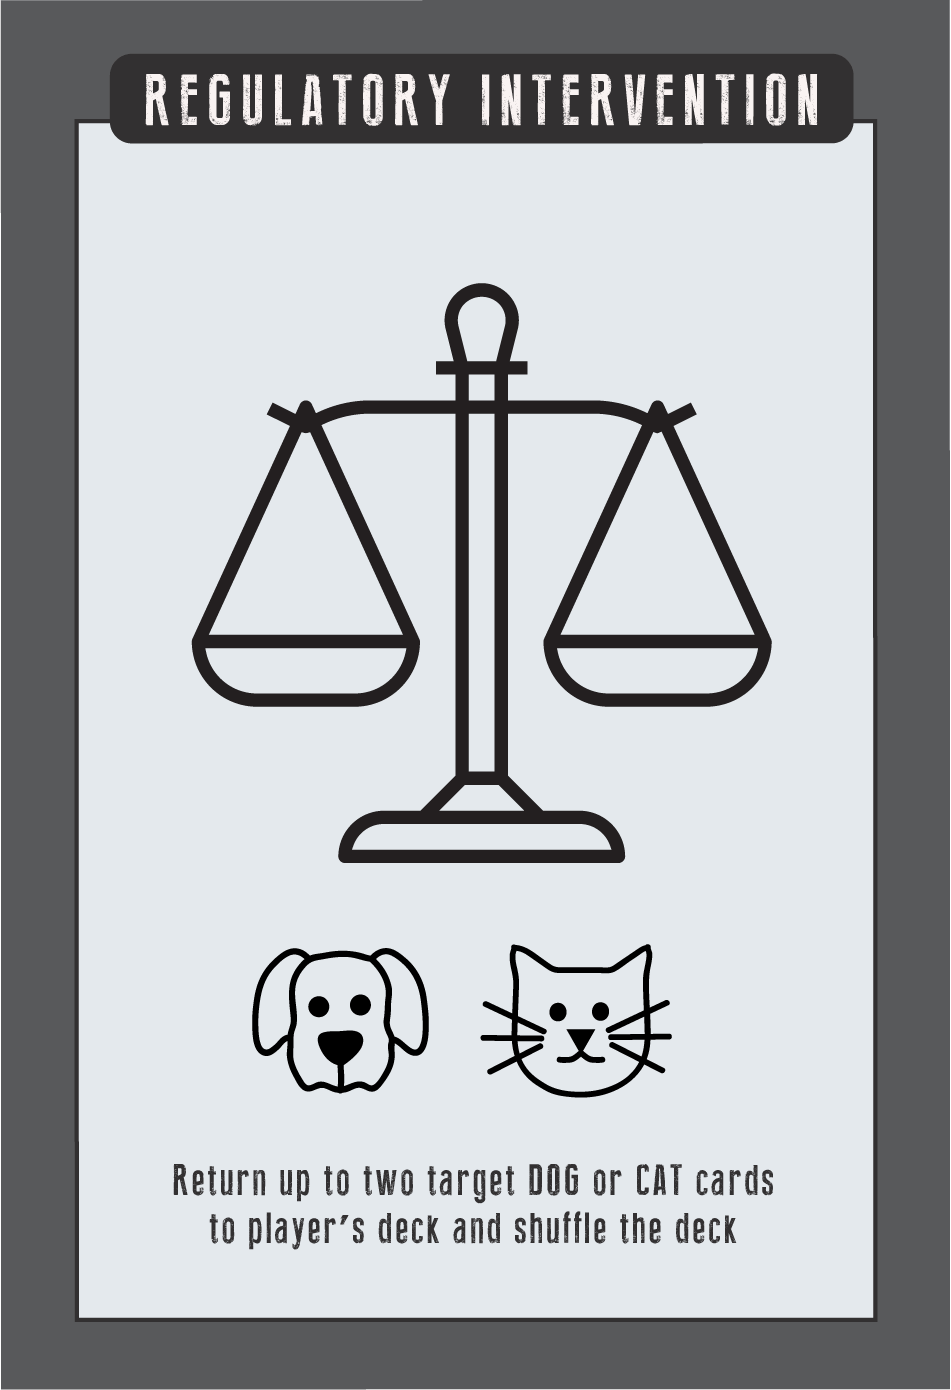 """Regulatory intervention card, """"Return up to two target DOG or CAT cards to player's deck and shuffle the deck"""""""